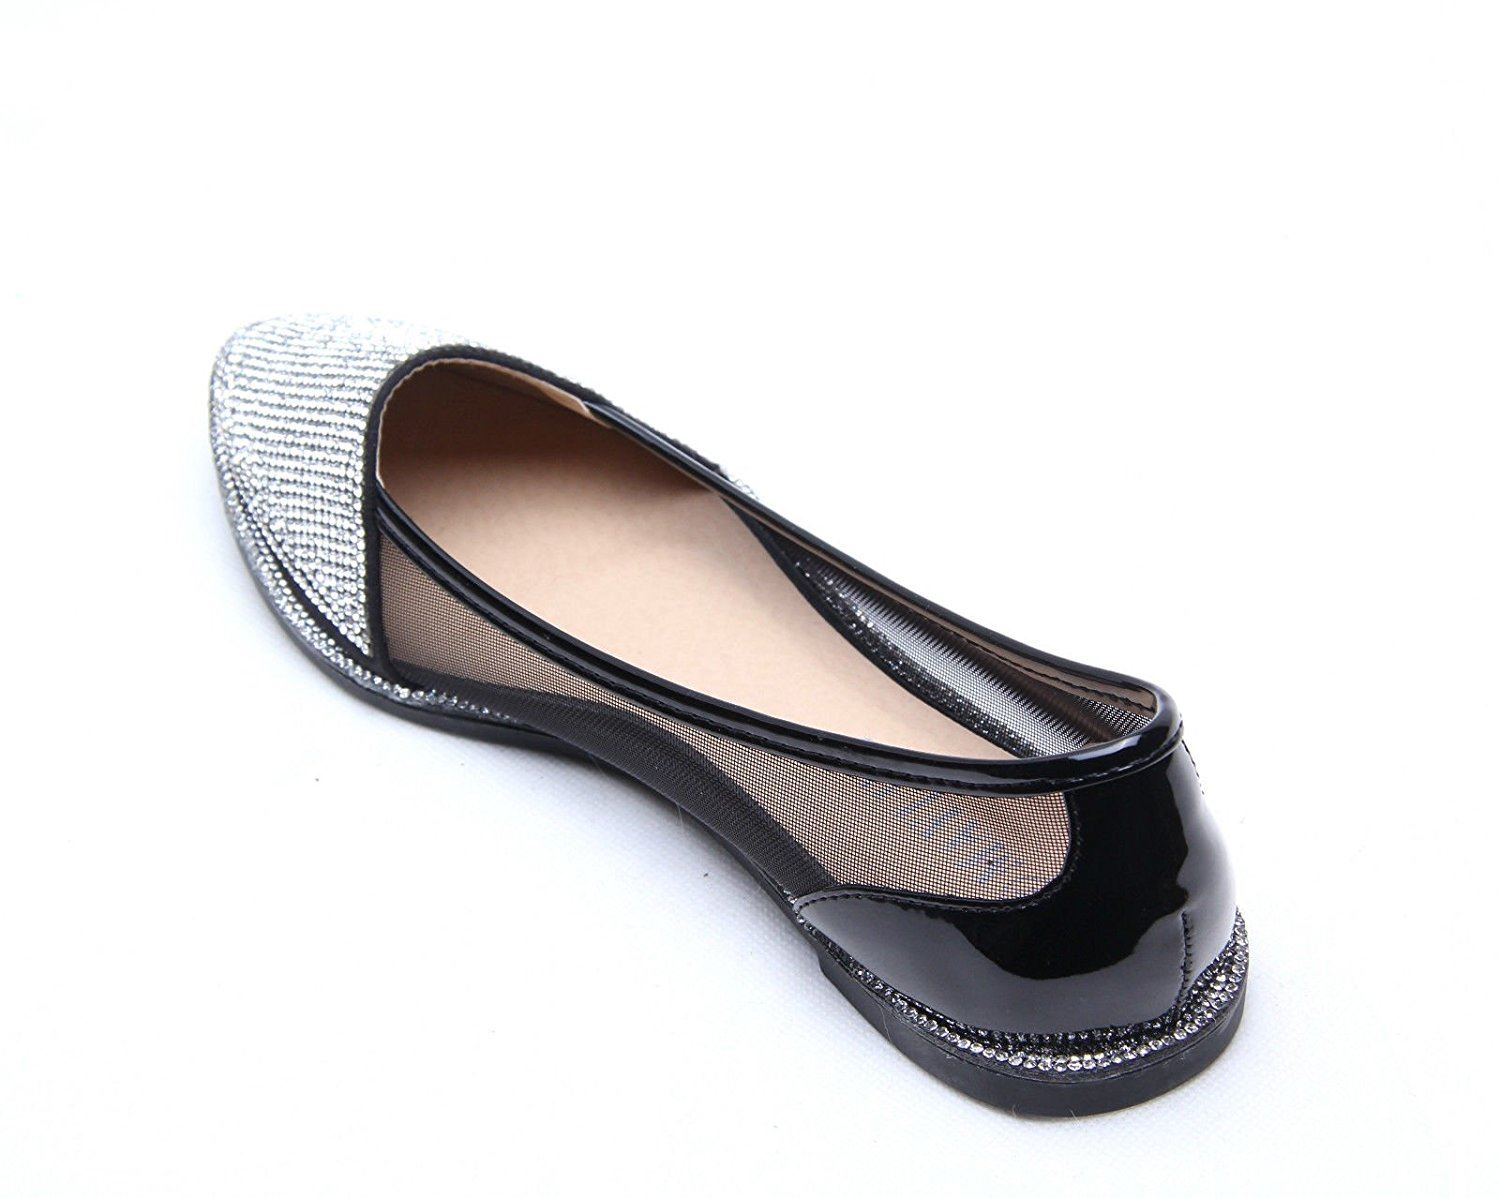 Black Sparkle Shoes. Clothing. Shoes. Black Sparkle Shoes. Showing 48 of results that match your query. Search Product Result. Product - Bamboo Womens QuintusA Perforated Cut Out Sparkle Rhinestone Ballet Flat Dress Shoes. Product Image. Price $ Product Title.